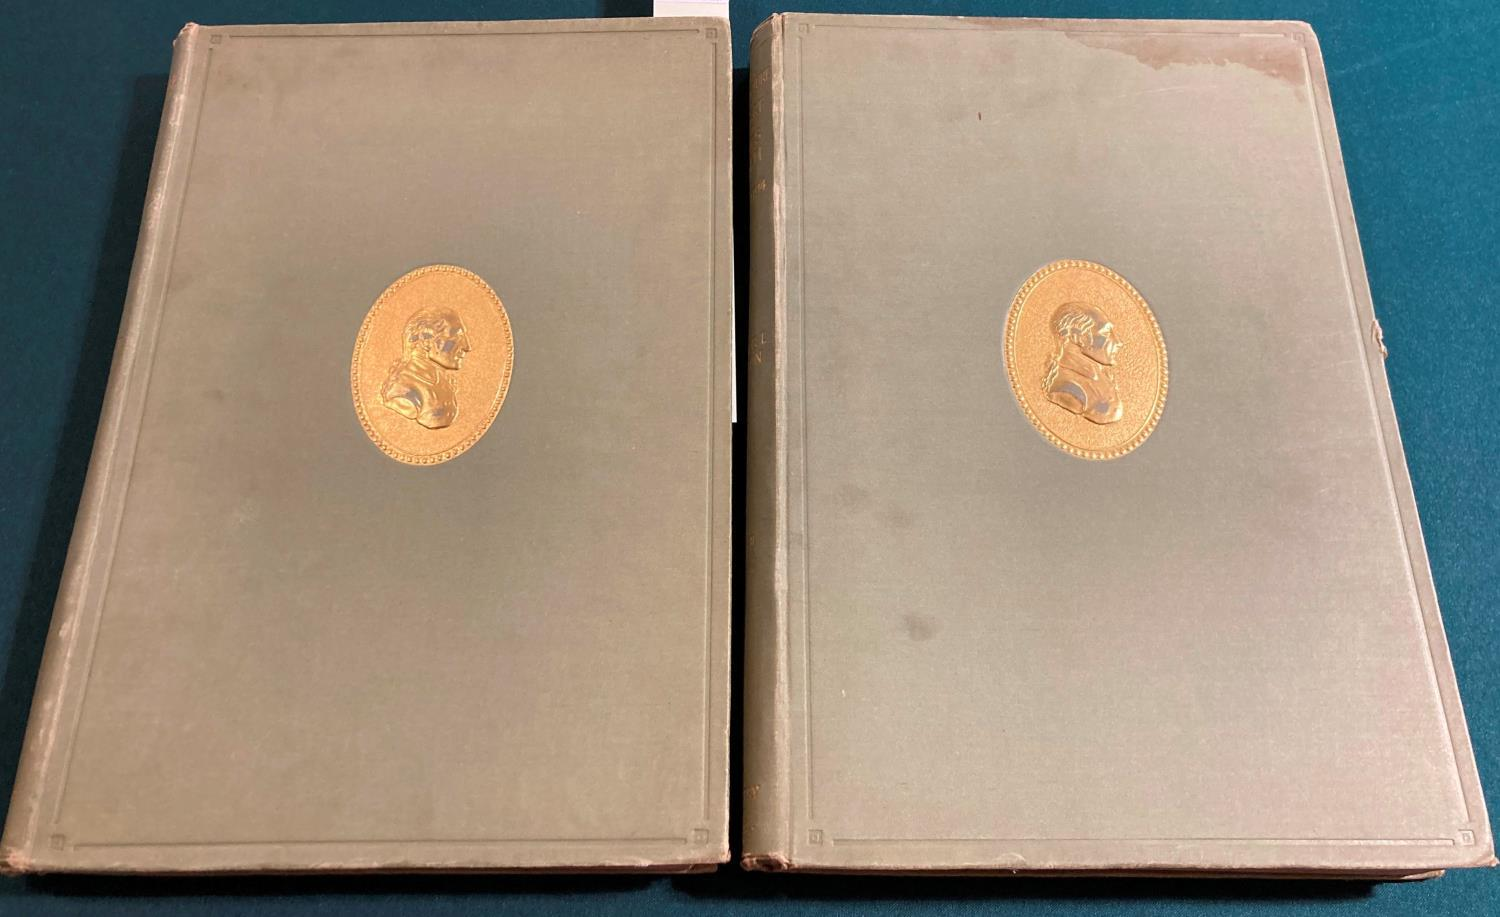 Bolton, Arthur T. The Architecture of Robert and James Adam, 2 volumes, first edition, plates,